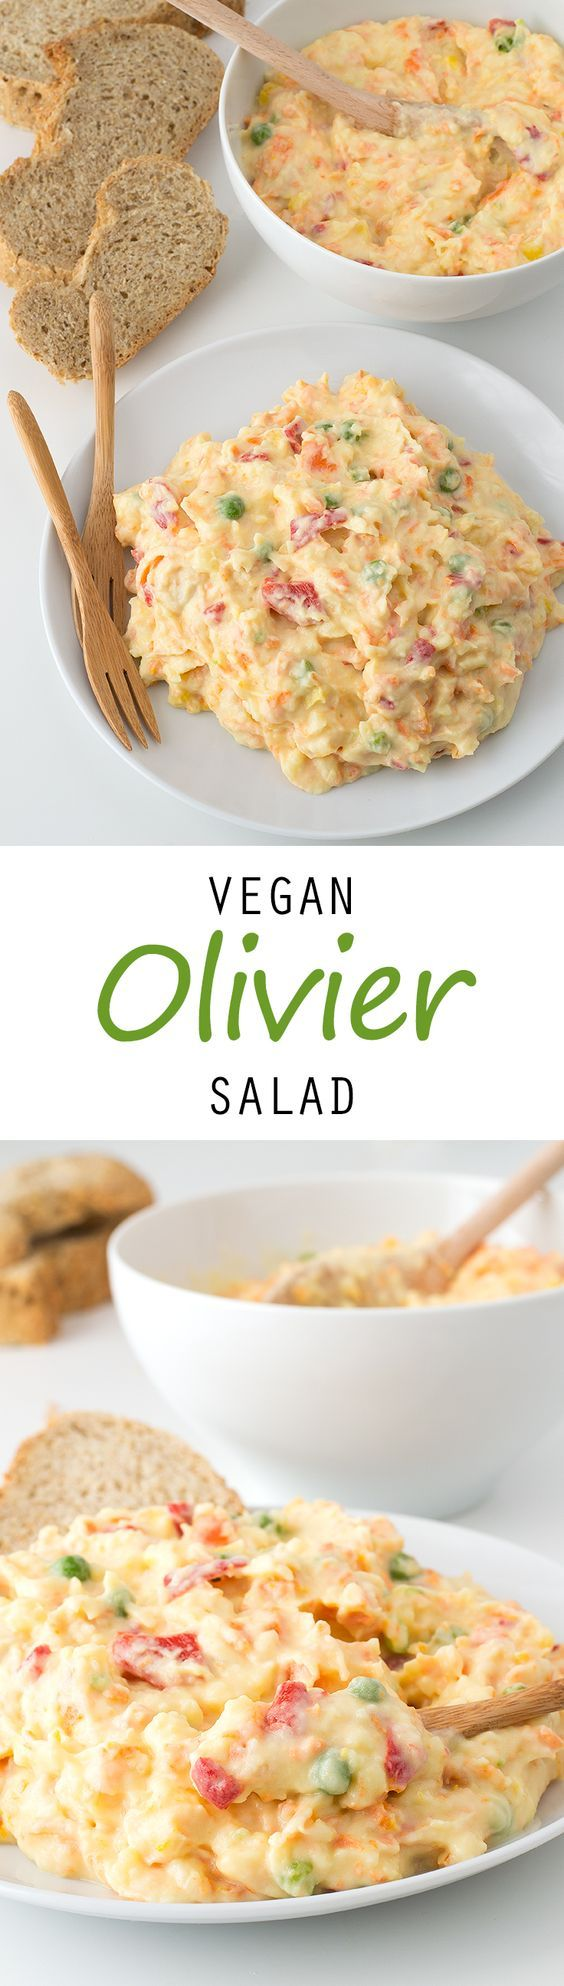 Vegan Olivier Salad #vegan #glutenfree: